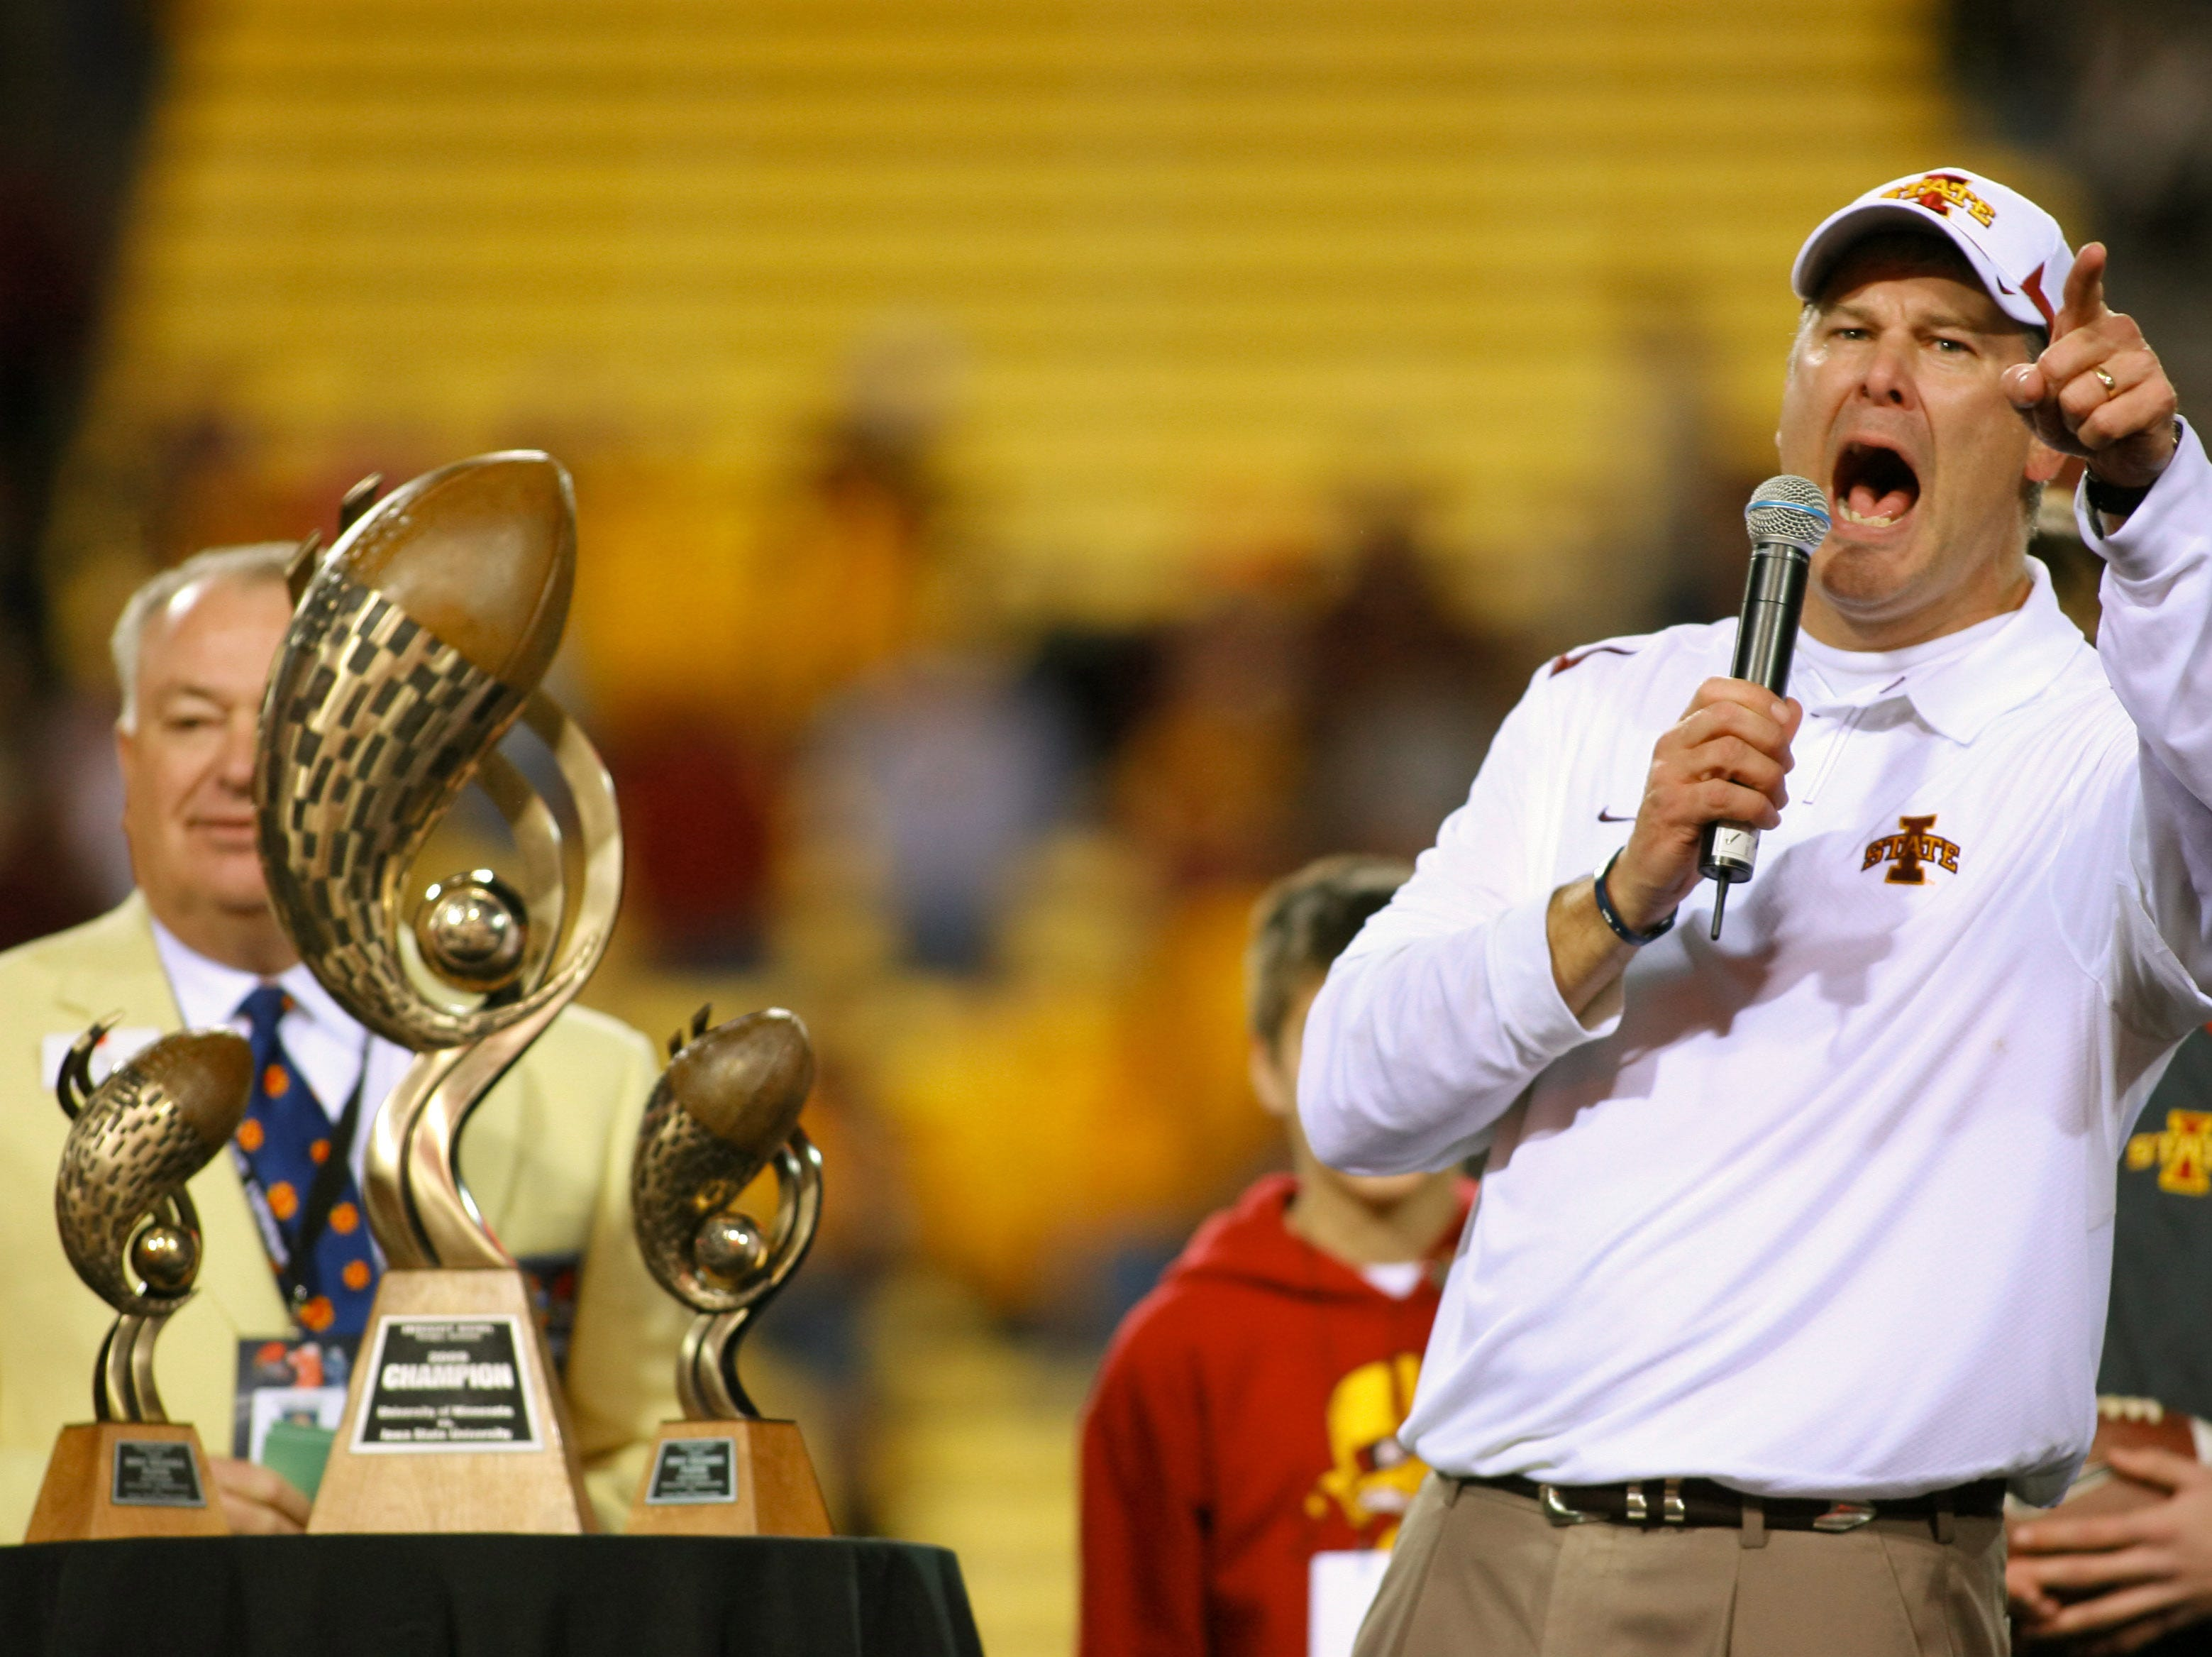 Dec 31, 2009; Tempe, AZ, USA; Iowa State Cyclones head coach Paul Rhoads speaks to the crowd during the trophy presentation of the 2009 Insight Bowl.  The Cyclones defeated the Iowa State Cyclones 14-13 at Sun Devil Stadium.  Mandatory Credit: Chris Morrison-USA TODAY Sports